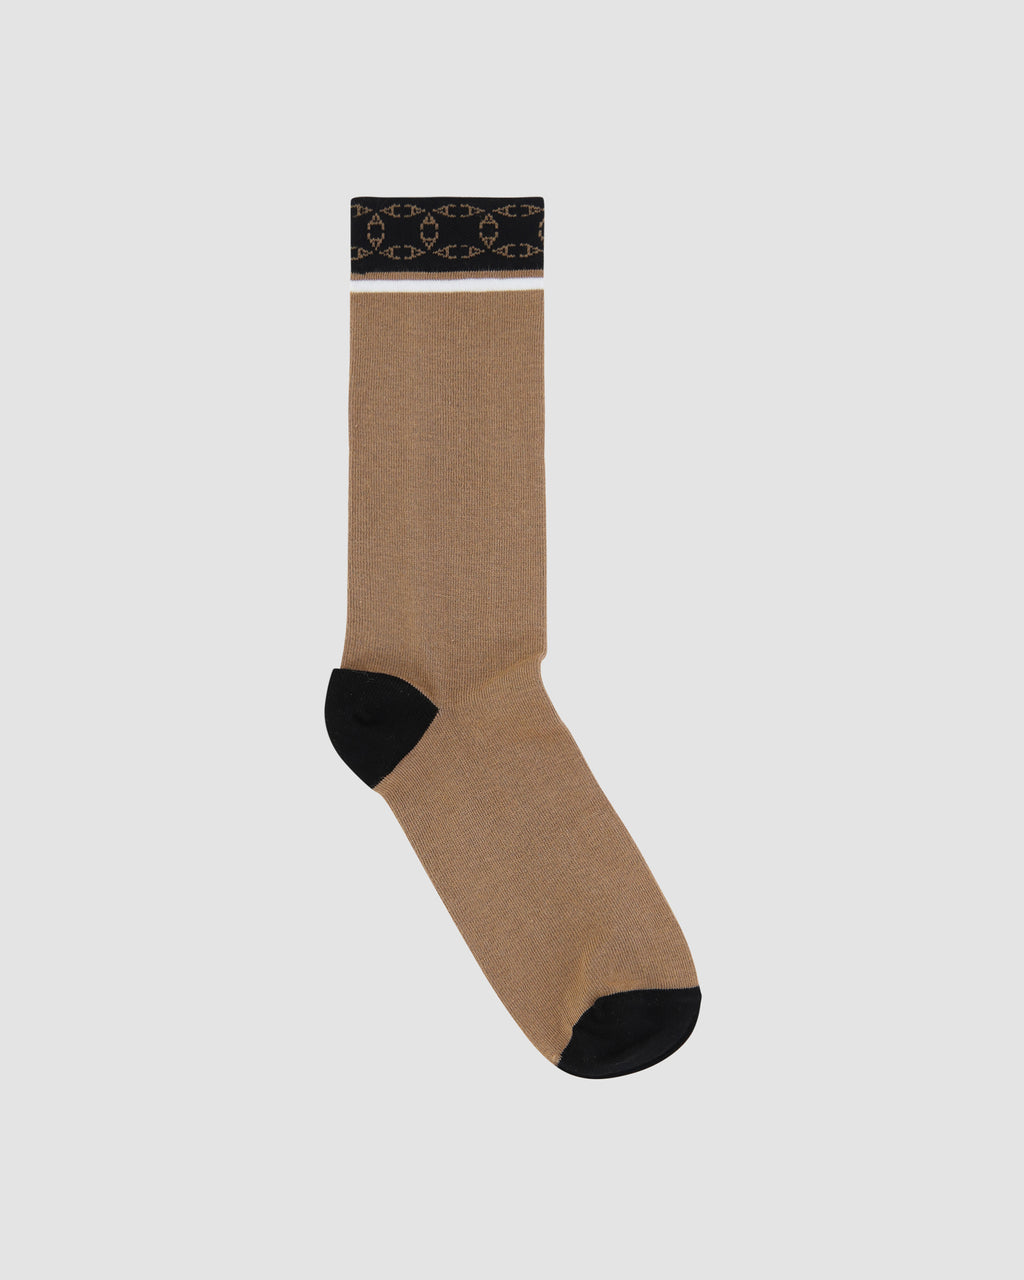 1017 ALYX 9SM | ALLOVER RIB SOCKS | Sock | Accessories, BROWN, Google Shopping, Man, S20, Socks, SS20, UNISEX, Woman